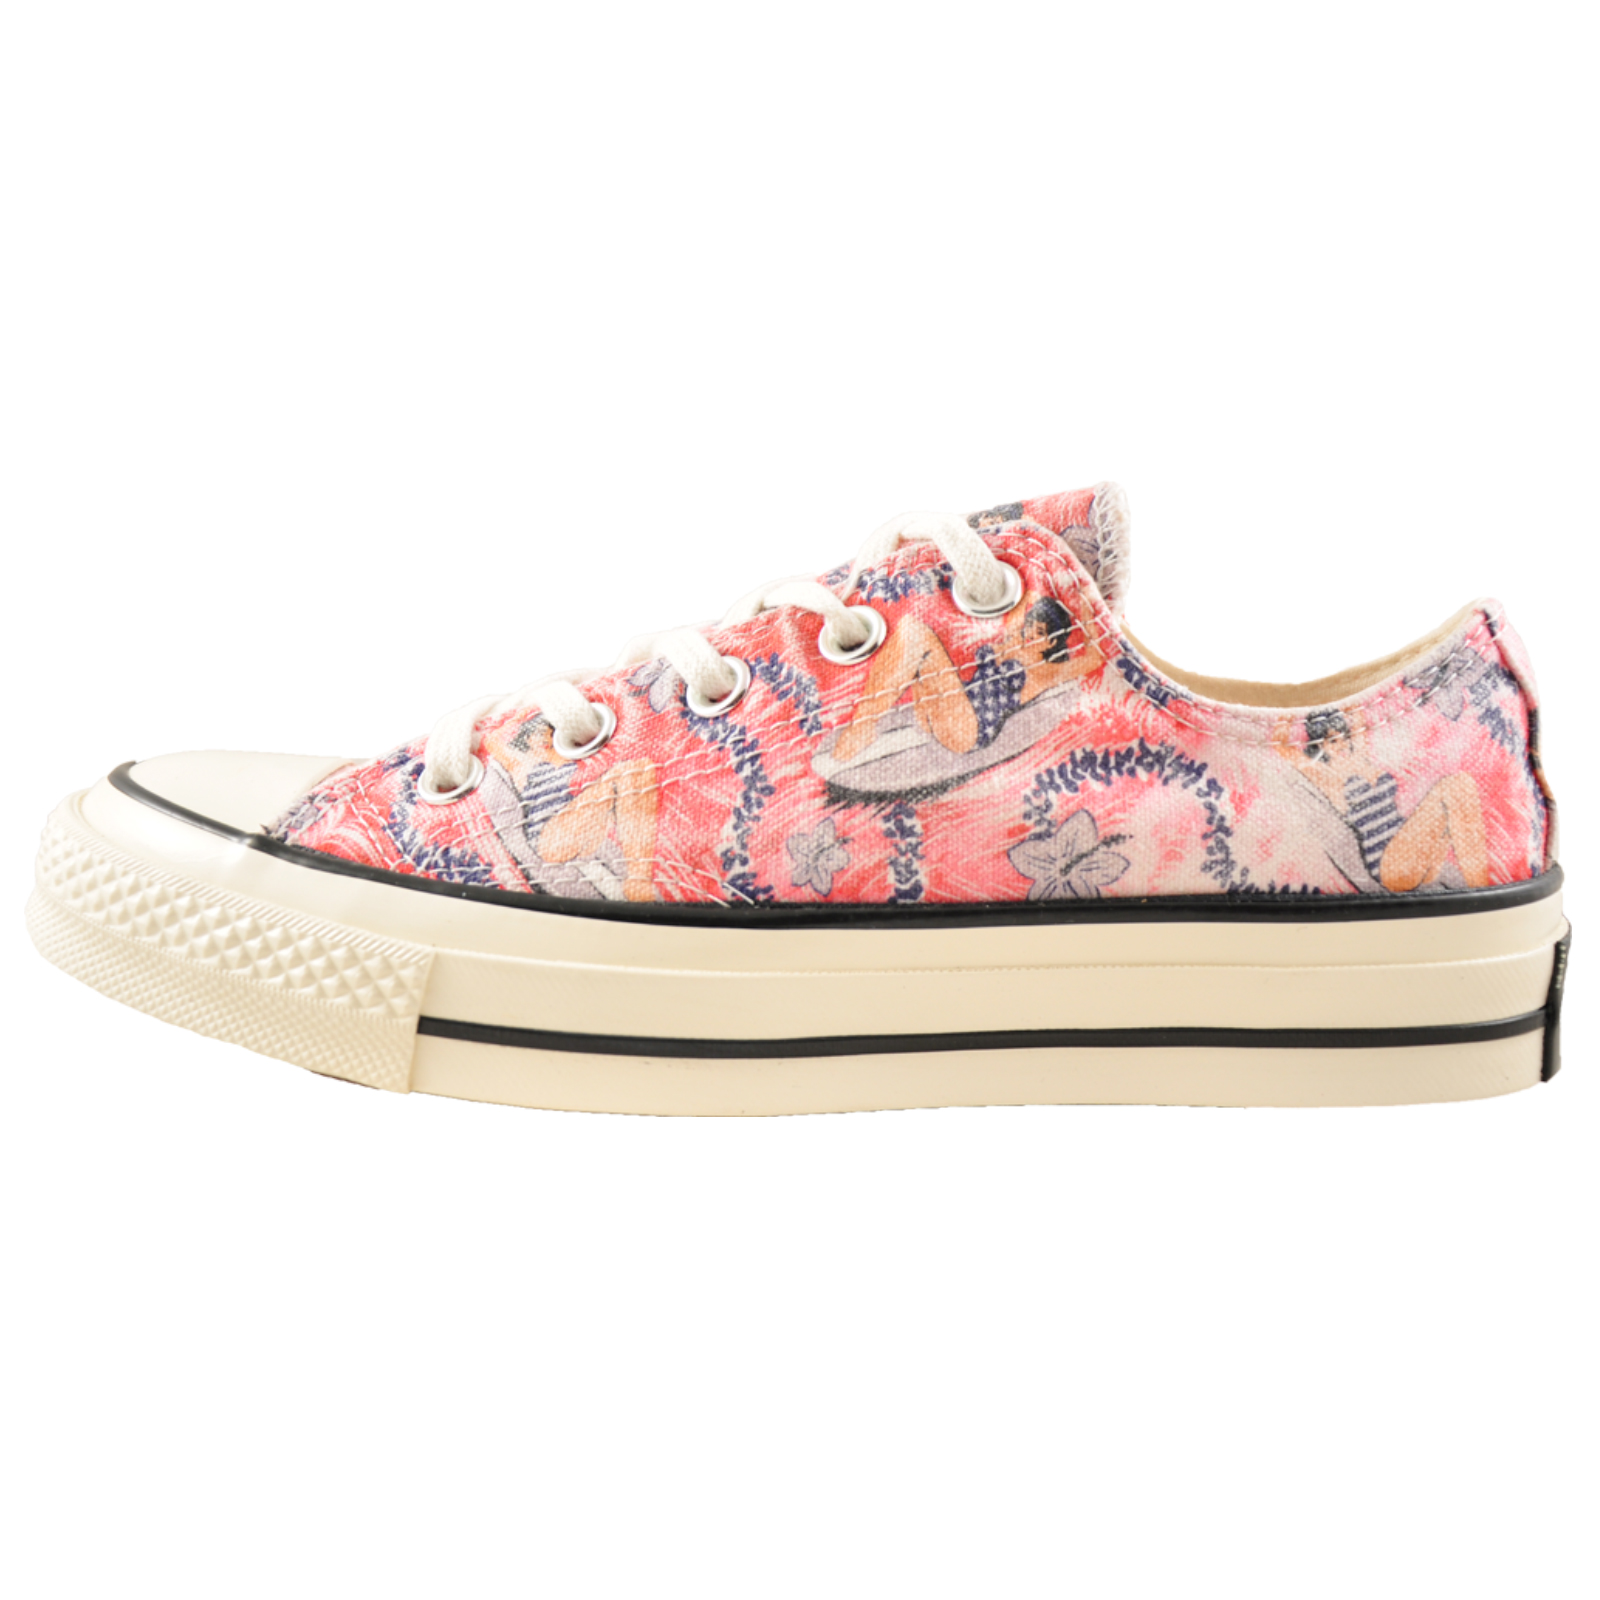 Converse Chuck Taylor All Star 70 Ox Casino Toile Femme Lacets Baskets eBay eBay